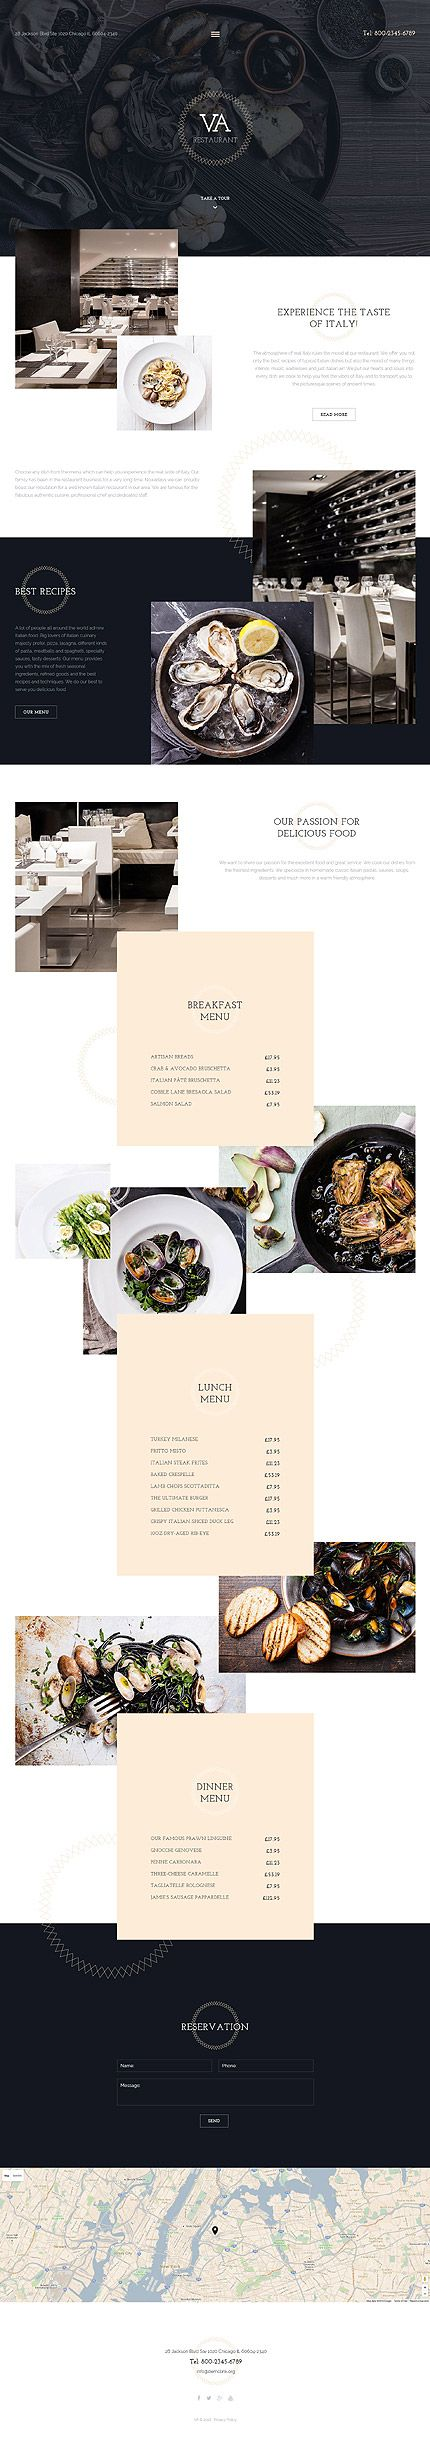 $75 Cafe & Restaurant Joomla Template BUY - http://www.themecrea.com/joomla-templates-type/57781.html